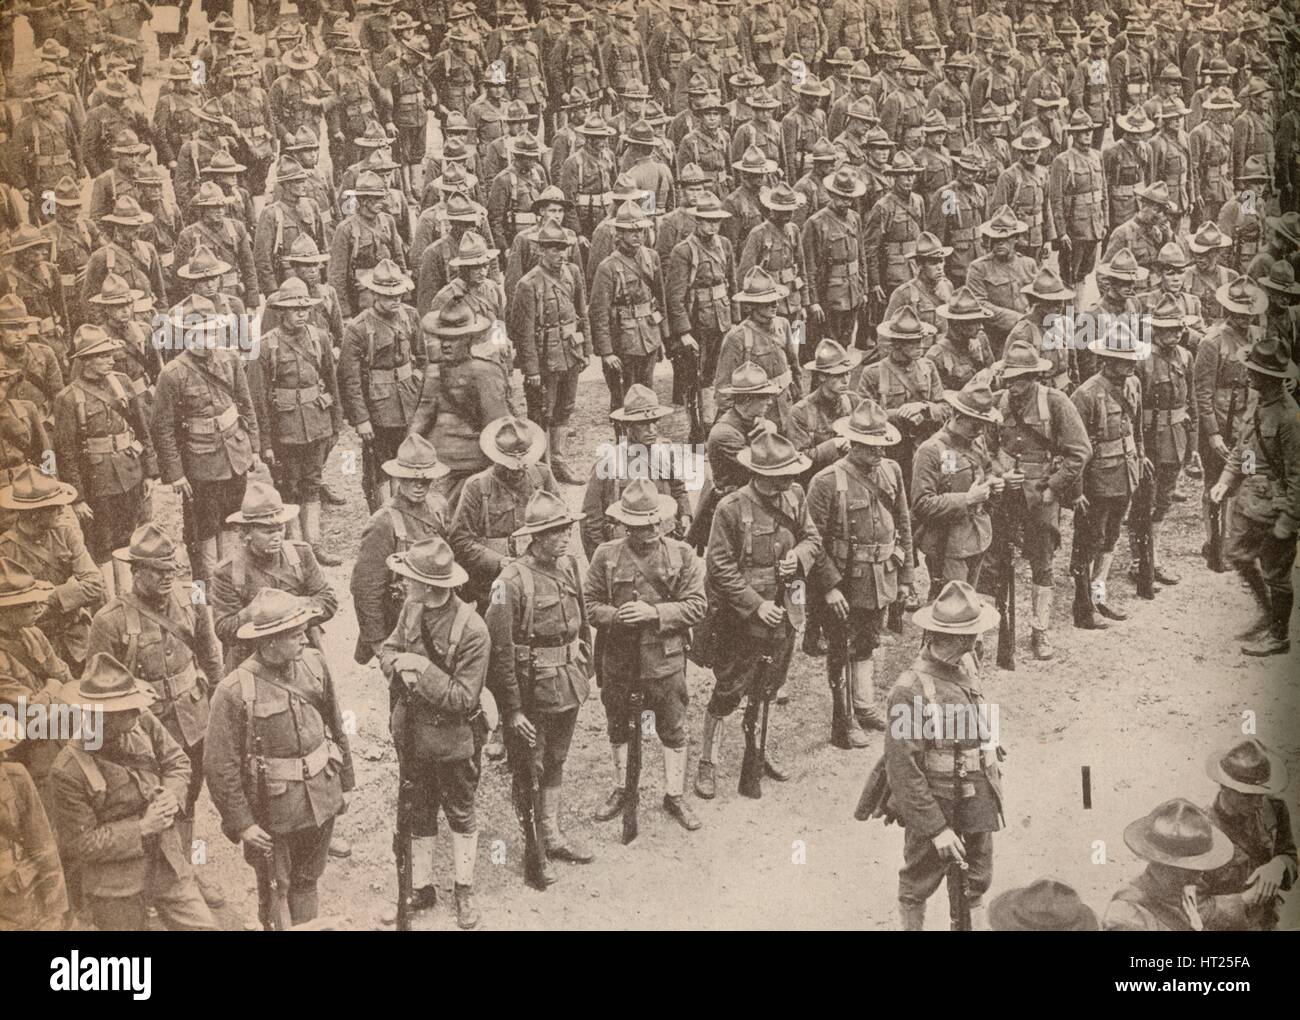 'United States Troops on parade before their march through London on August 15, 1917, when they were Artist: - Stock Image